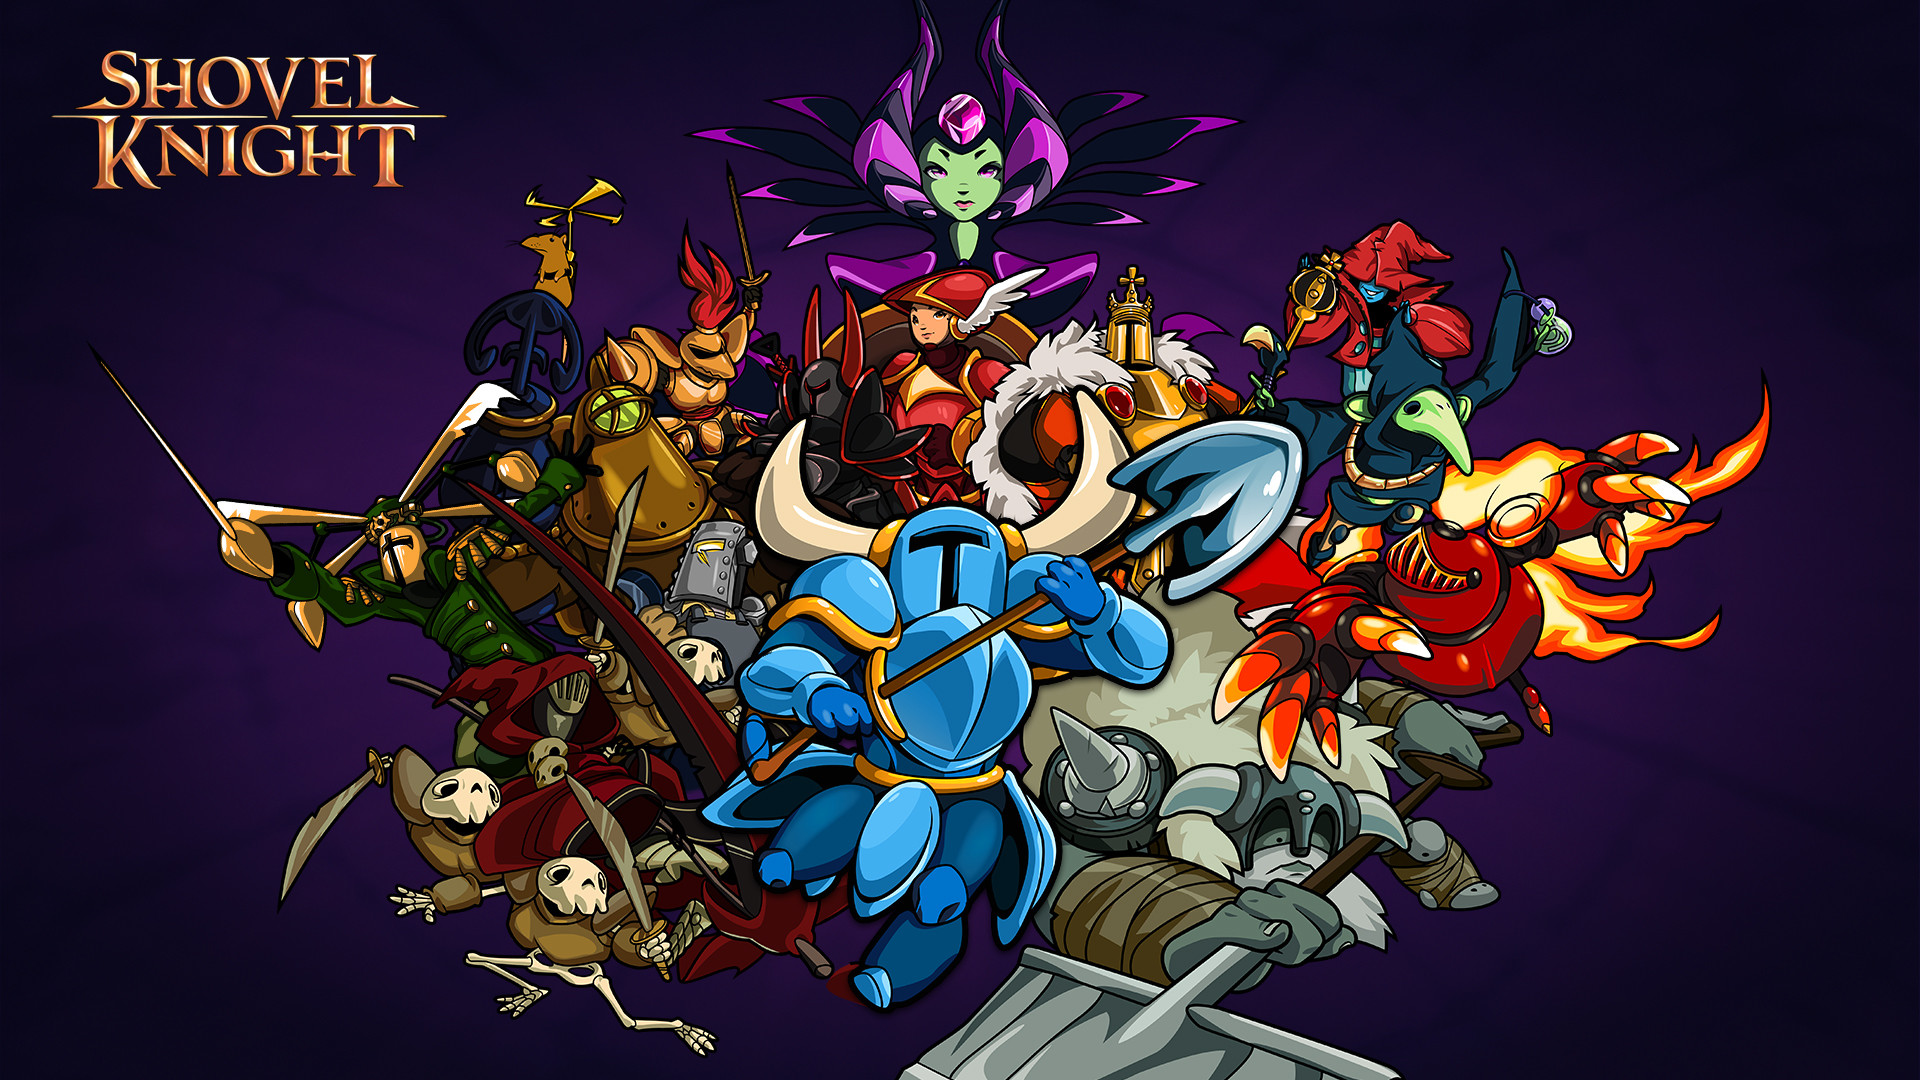 7 HD Shovel Knight Game Wallpapers